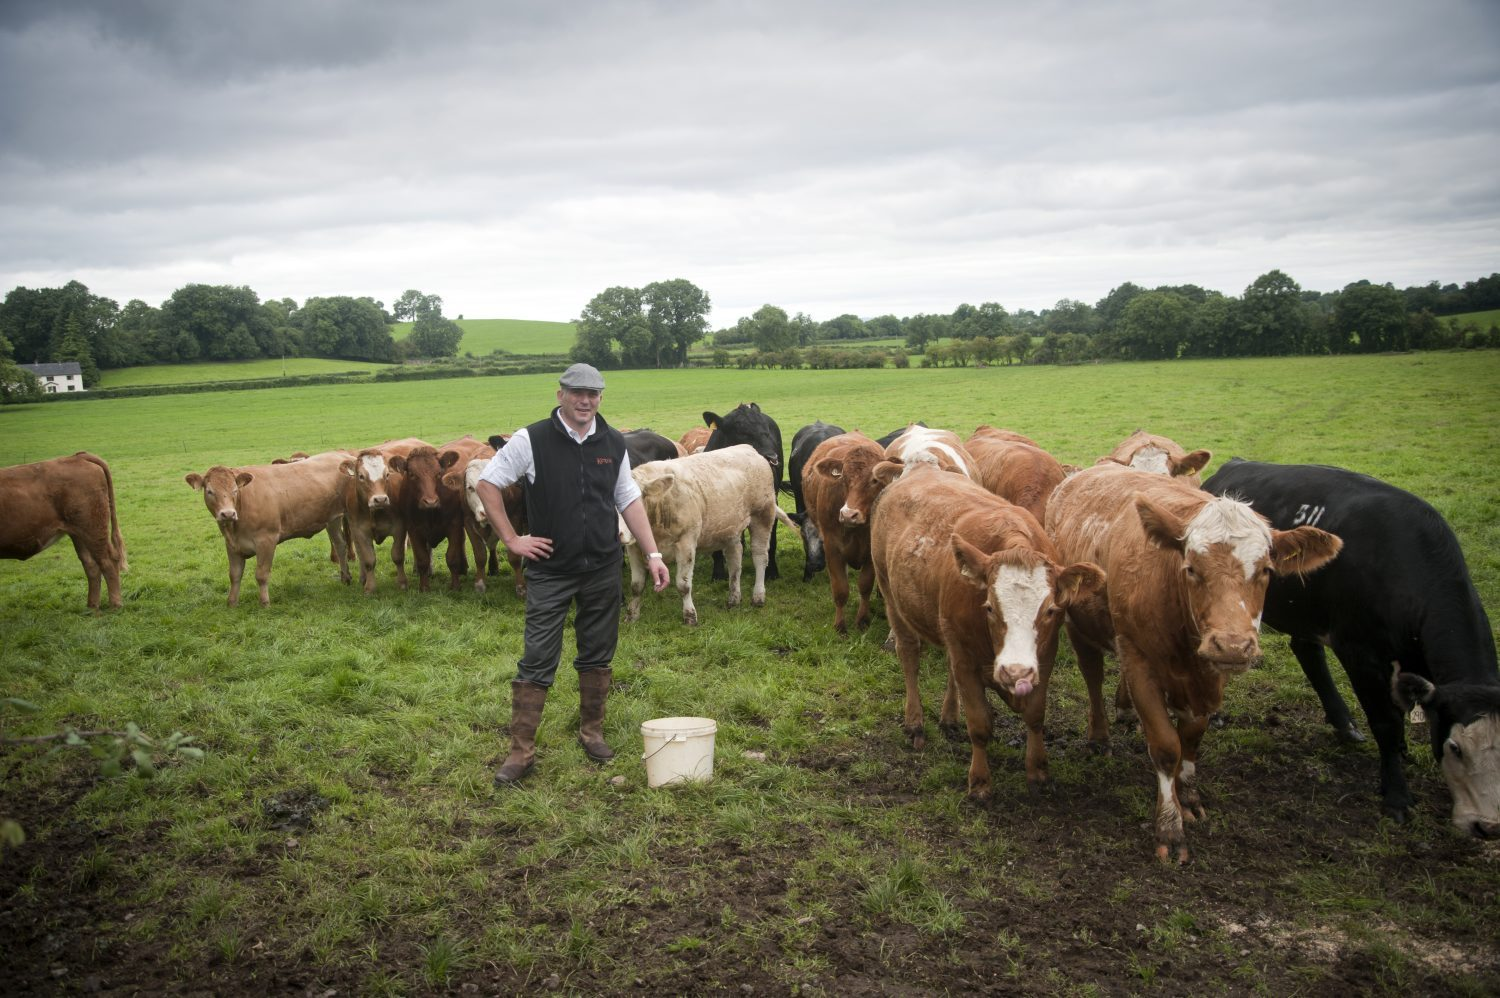 A visit to one of Ireland's beef farms